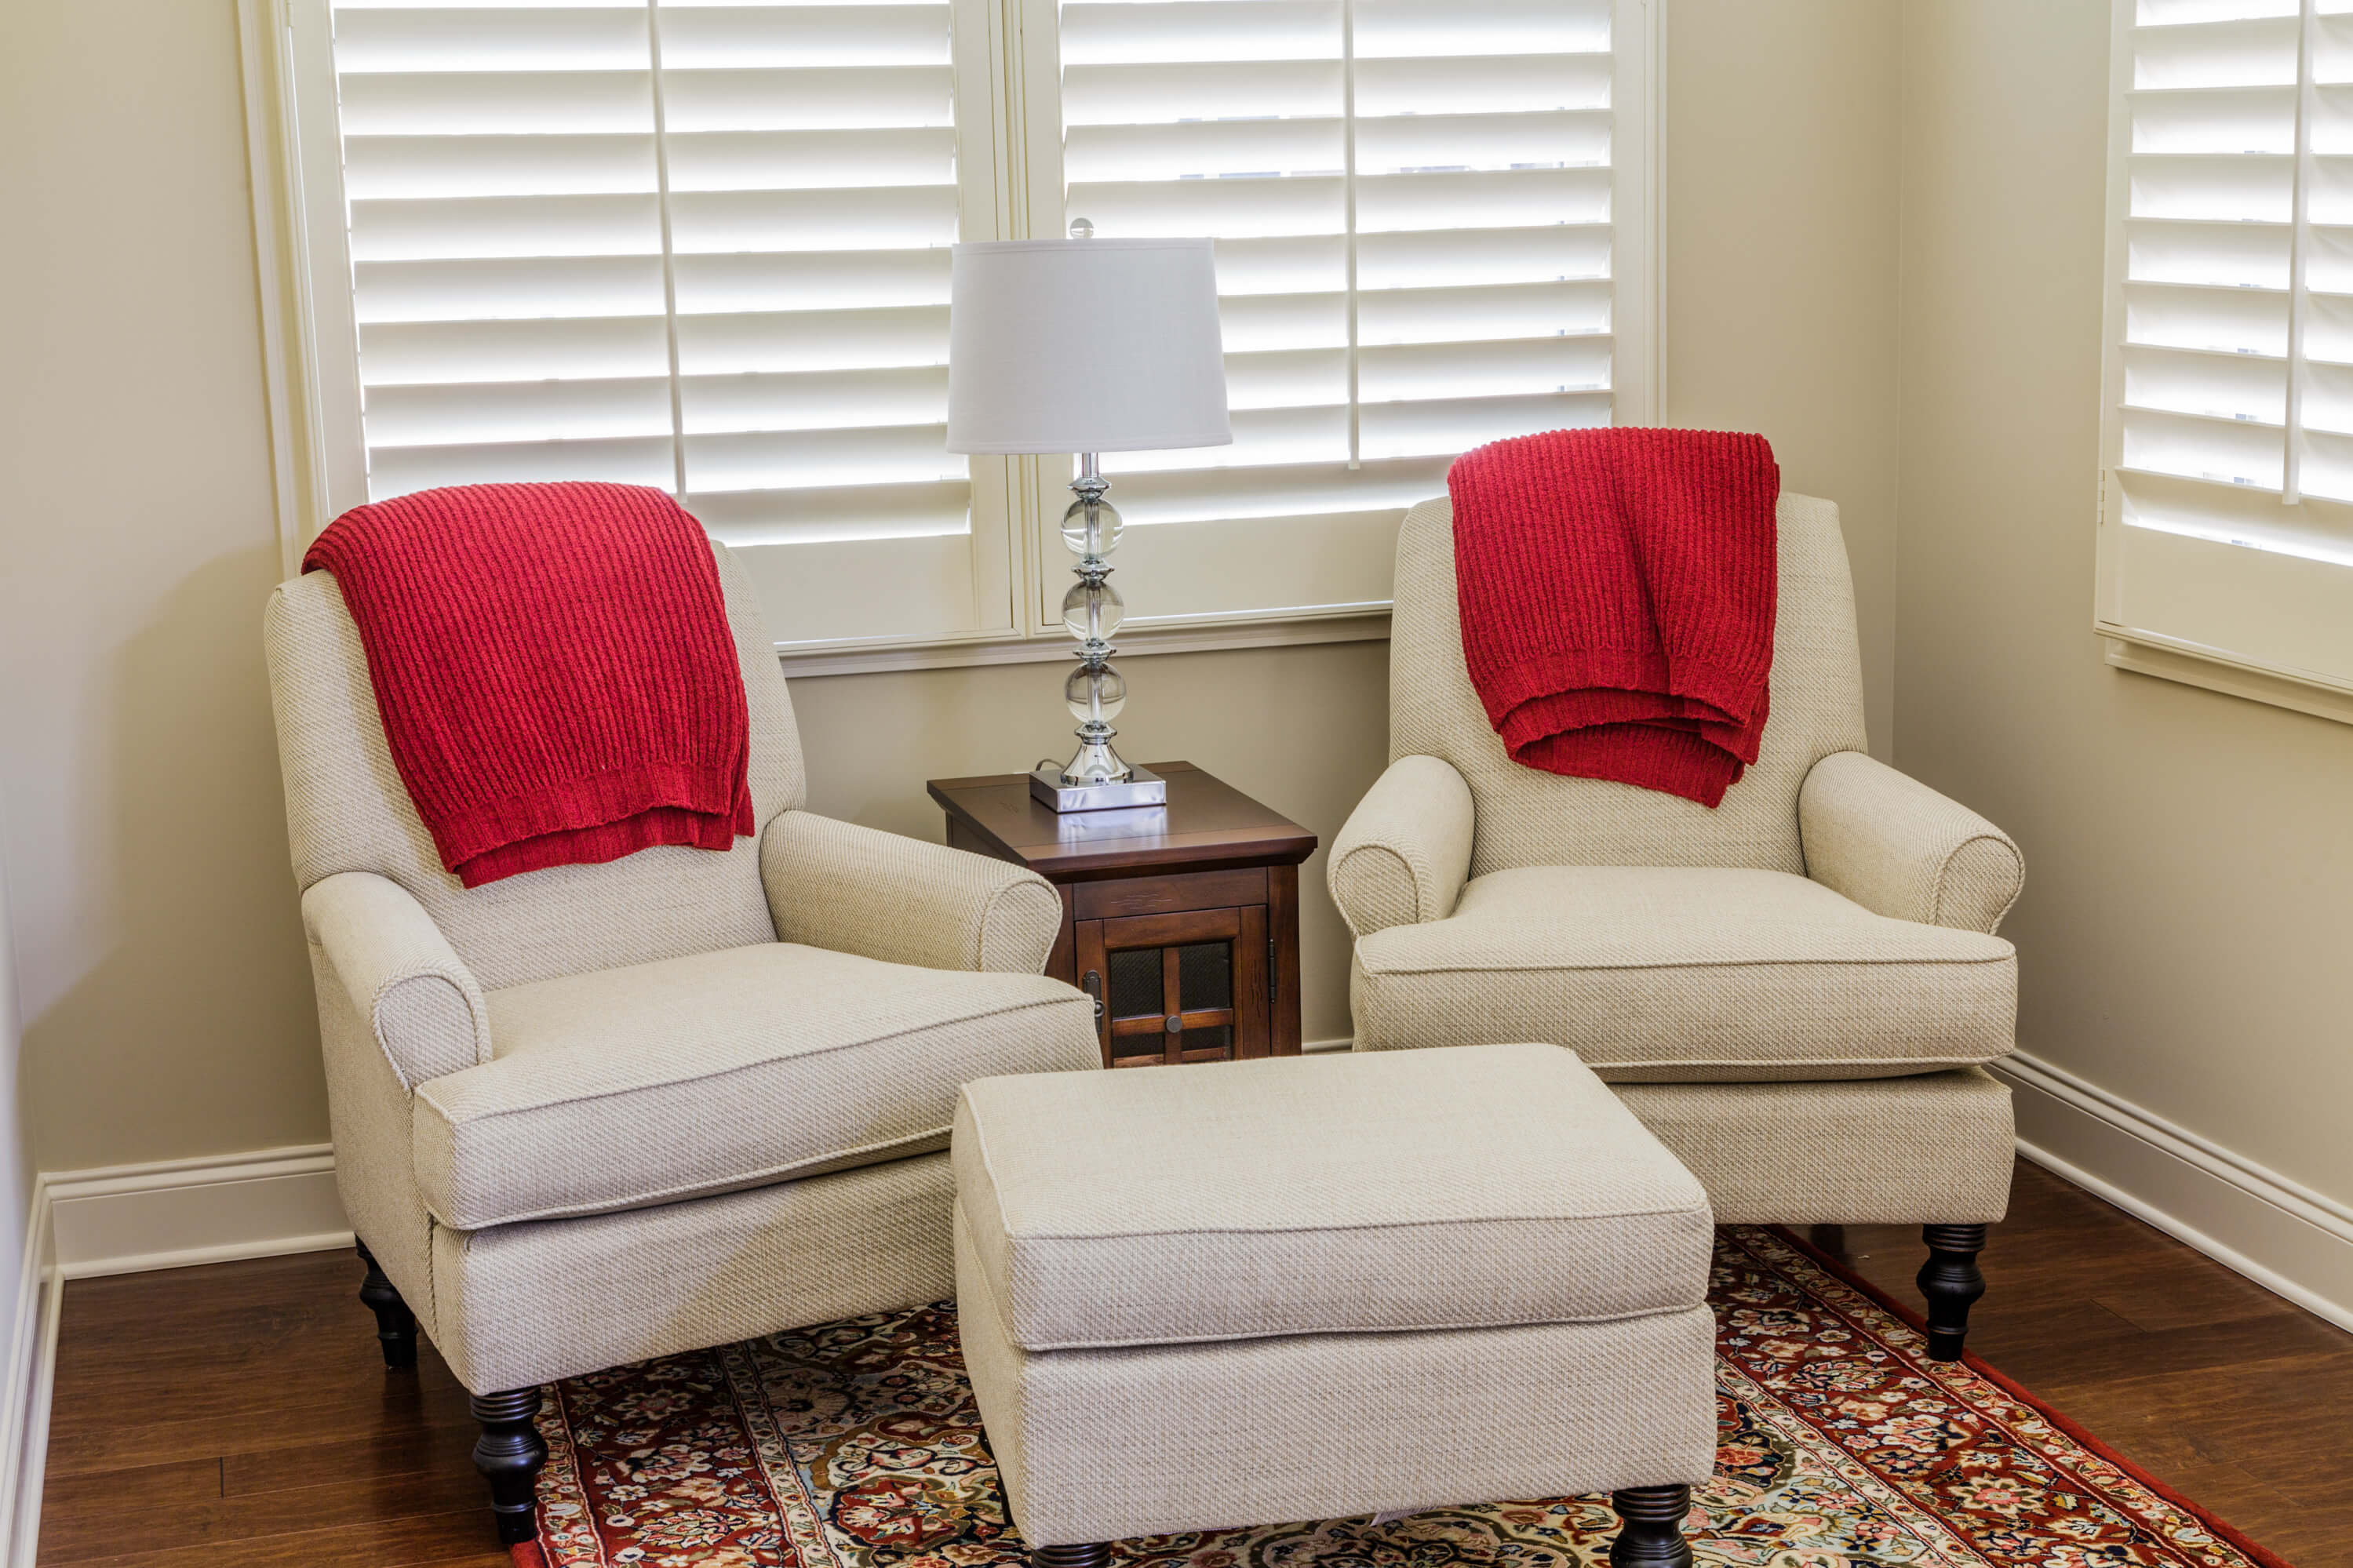 How Why To Choose Shutters For Your Home Interior